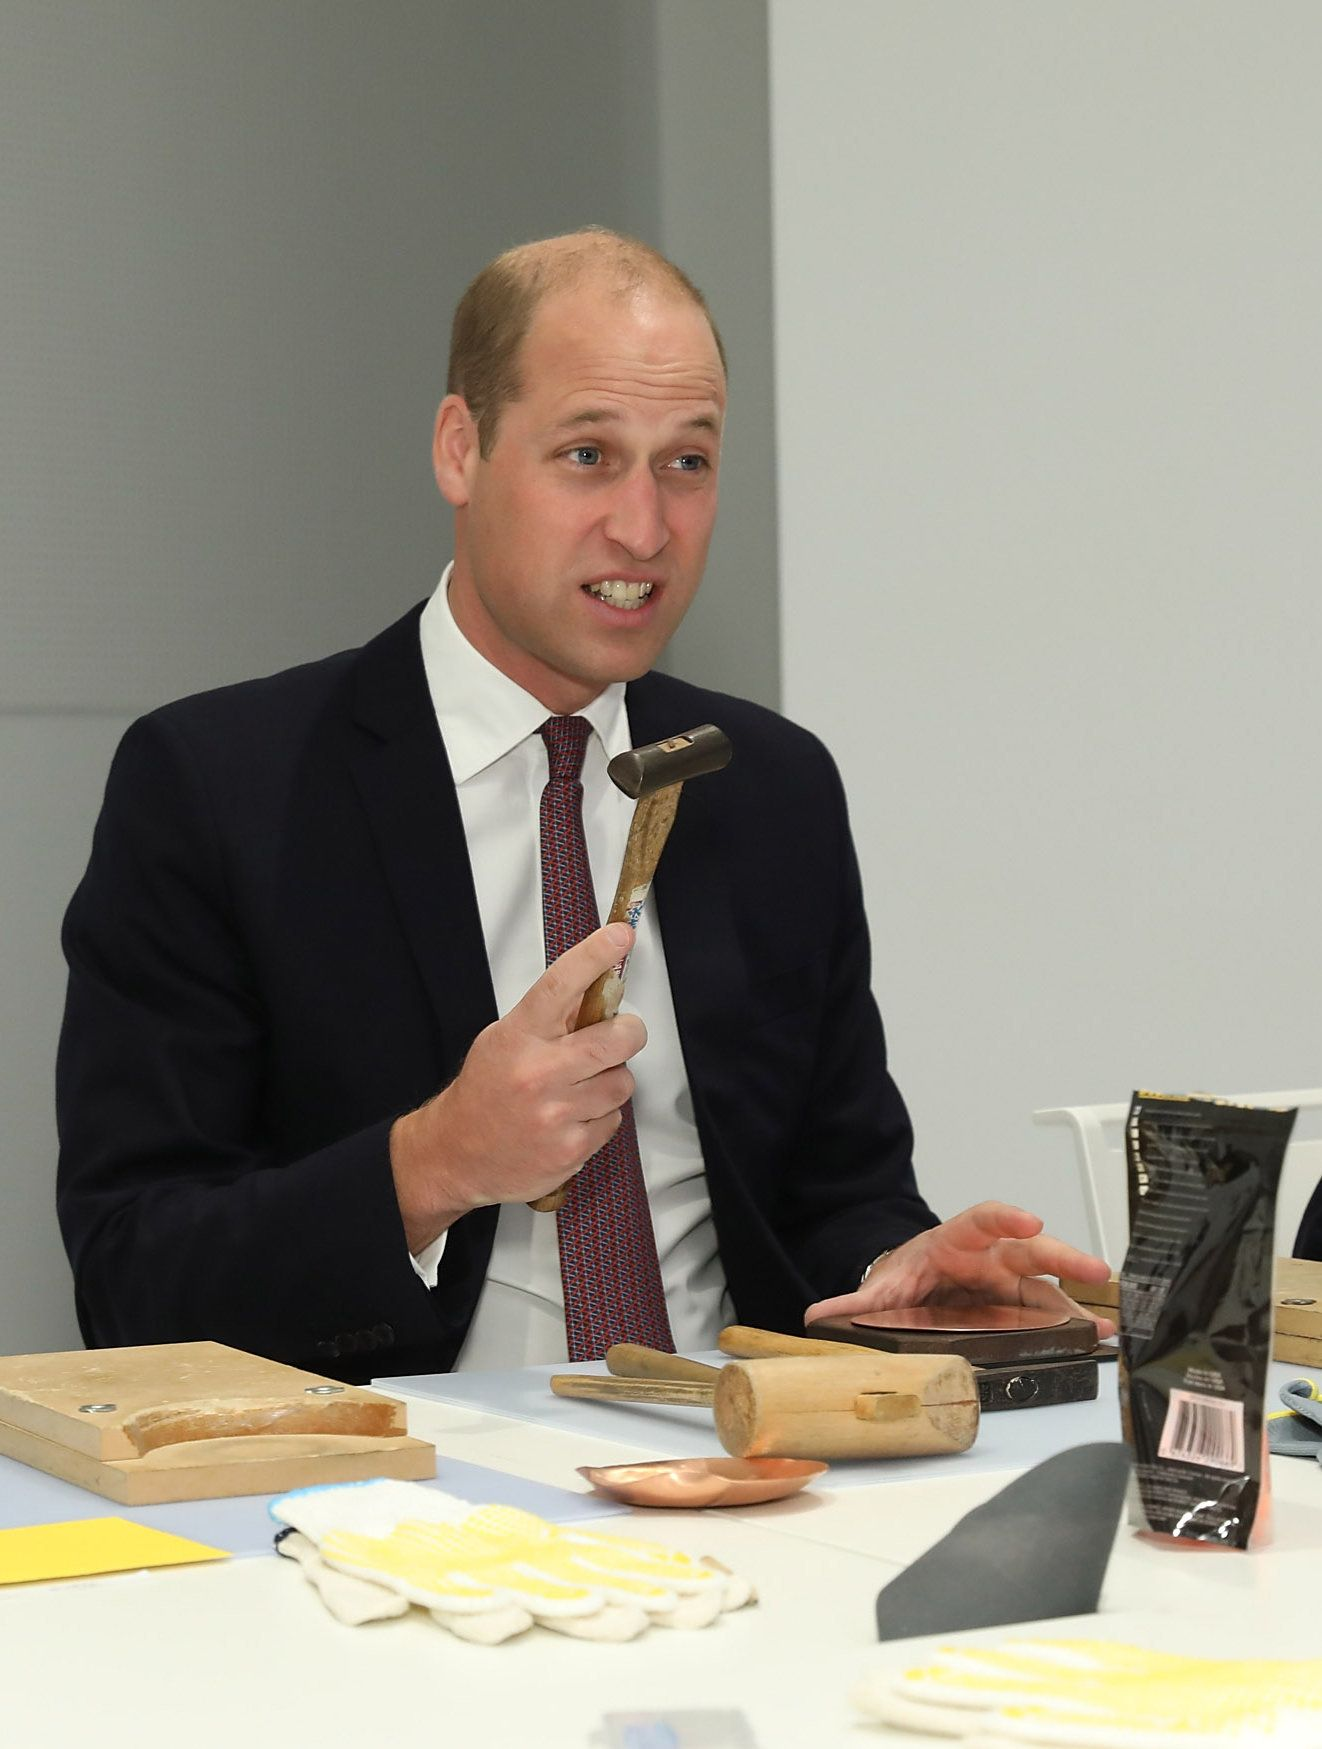 Britain's Prince William, Duke of Cambridge joins local school children at a copper beating workshop during the official opening of Japan House, the new Cultural Home of Japan in London on September 13, 2018. (Photo by Tim P. Whitby / POOL / Getty Images)        (Photo credit should read TIM P. WHITBY/AFP/Getty Images)